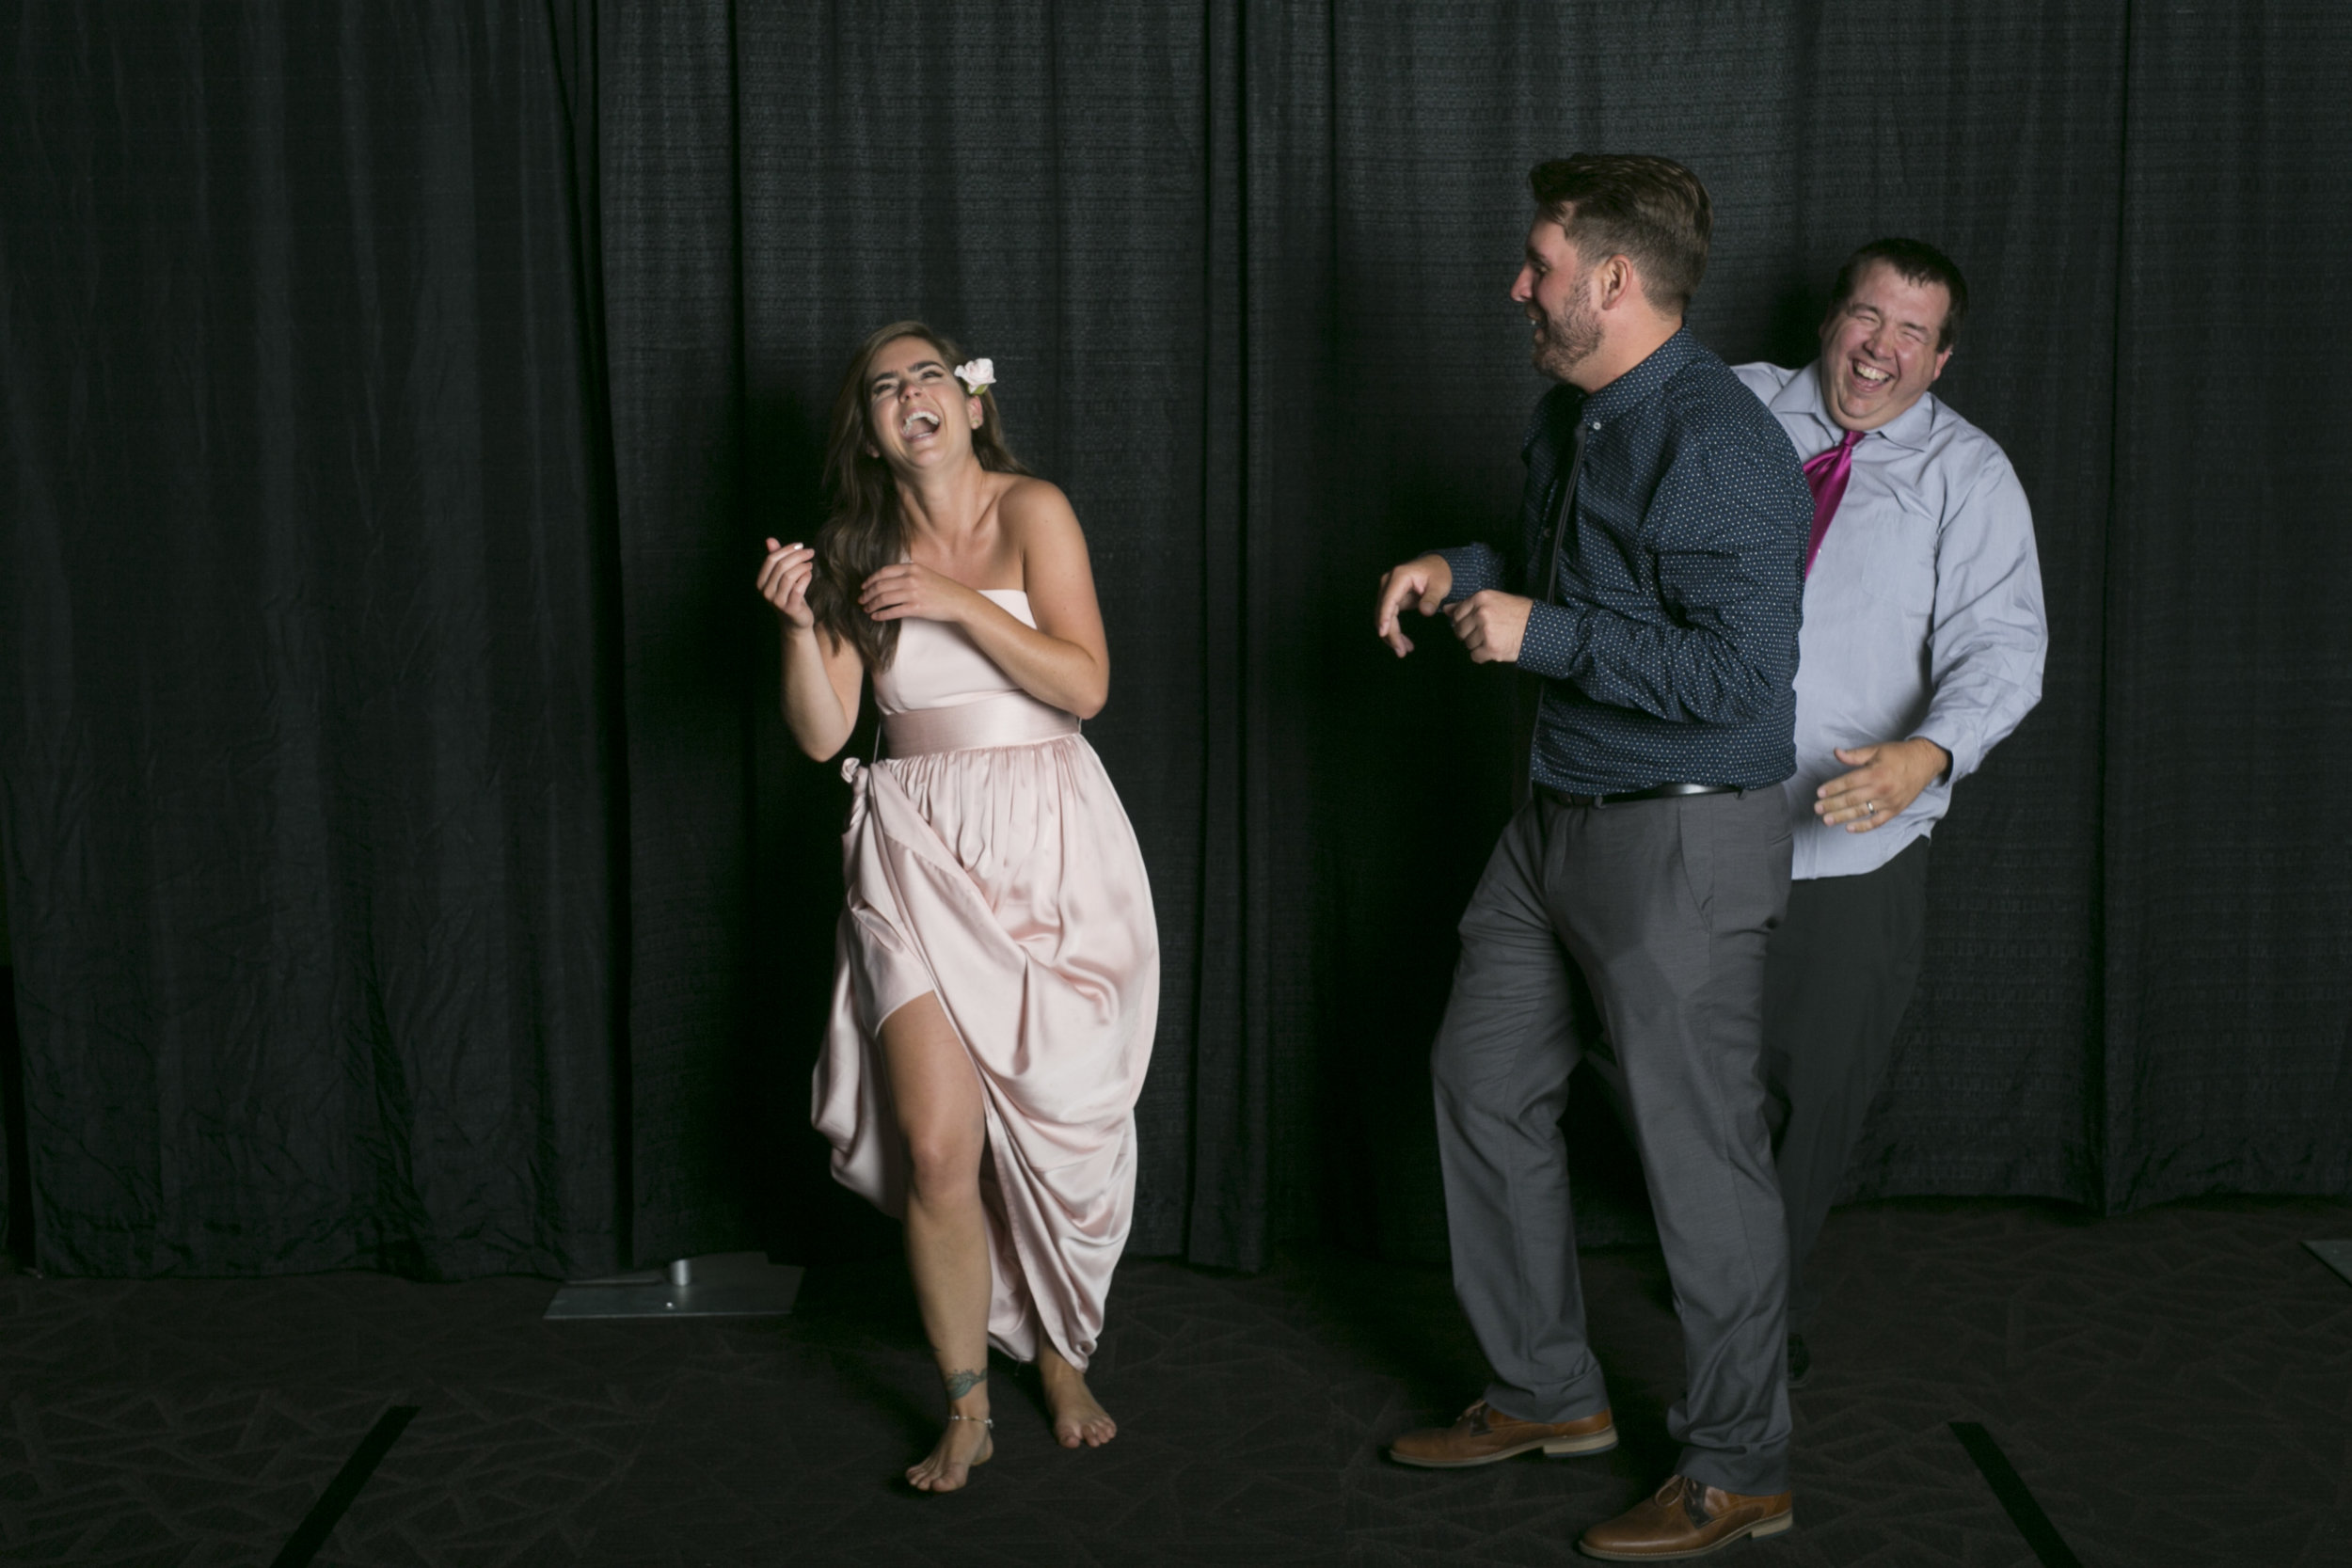 wedding photo booth-133.jpg